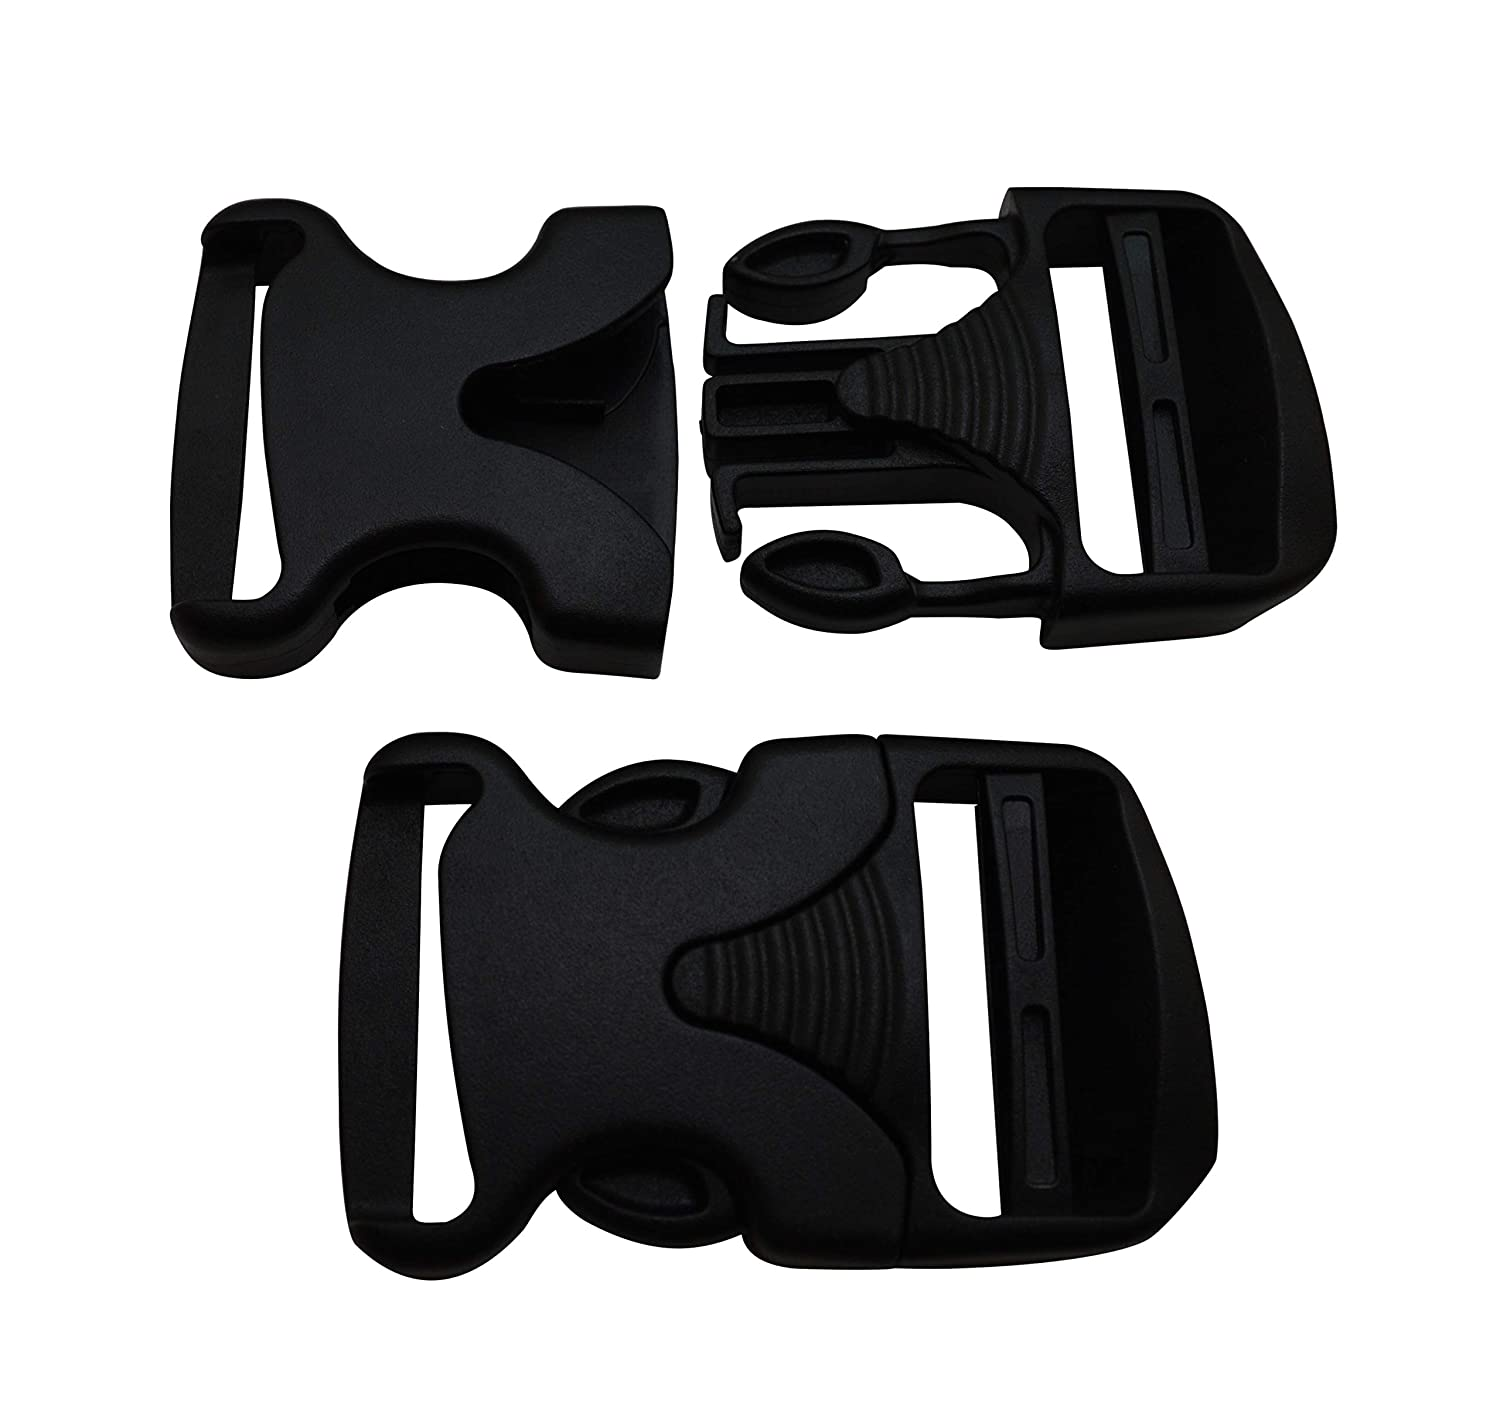 Wuuycoky 1.5 Inner Width Black Plastic Curved Side Release Buckle One Side Adjustable